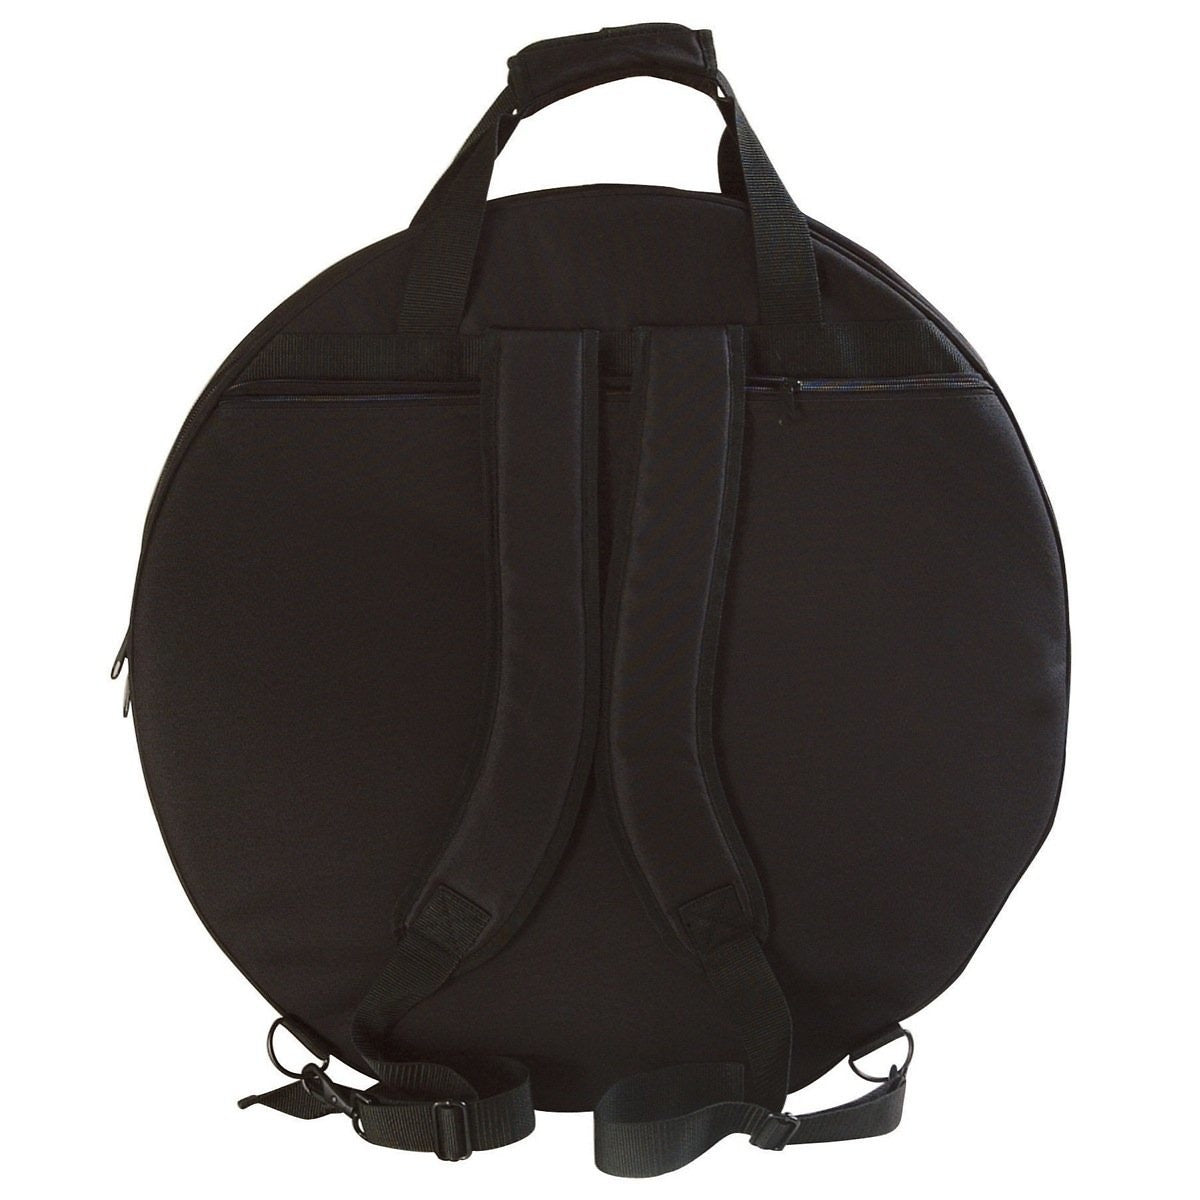 On-Stage DrumFire CB4000 Backpack Cymbal Bag